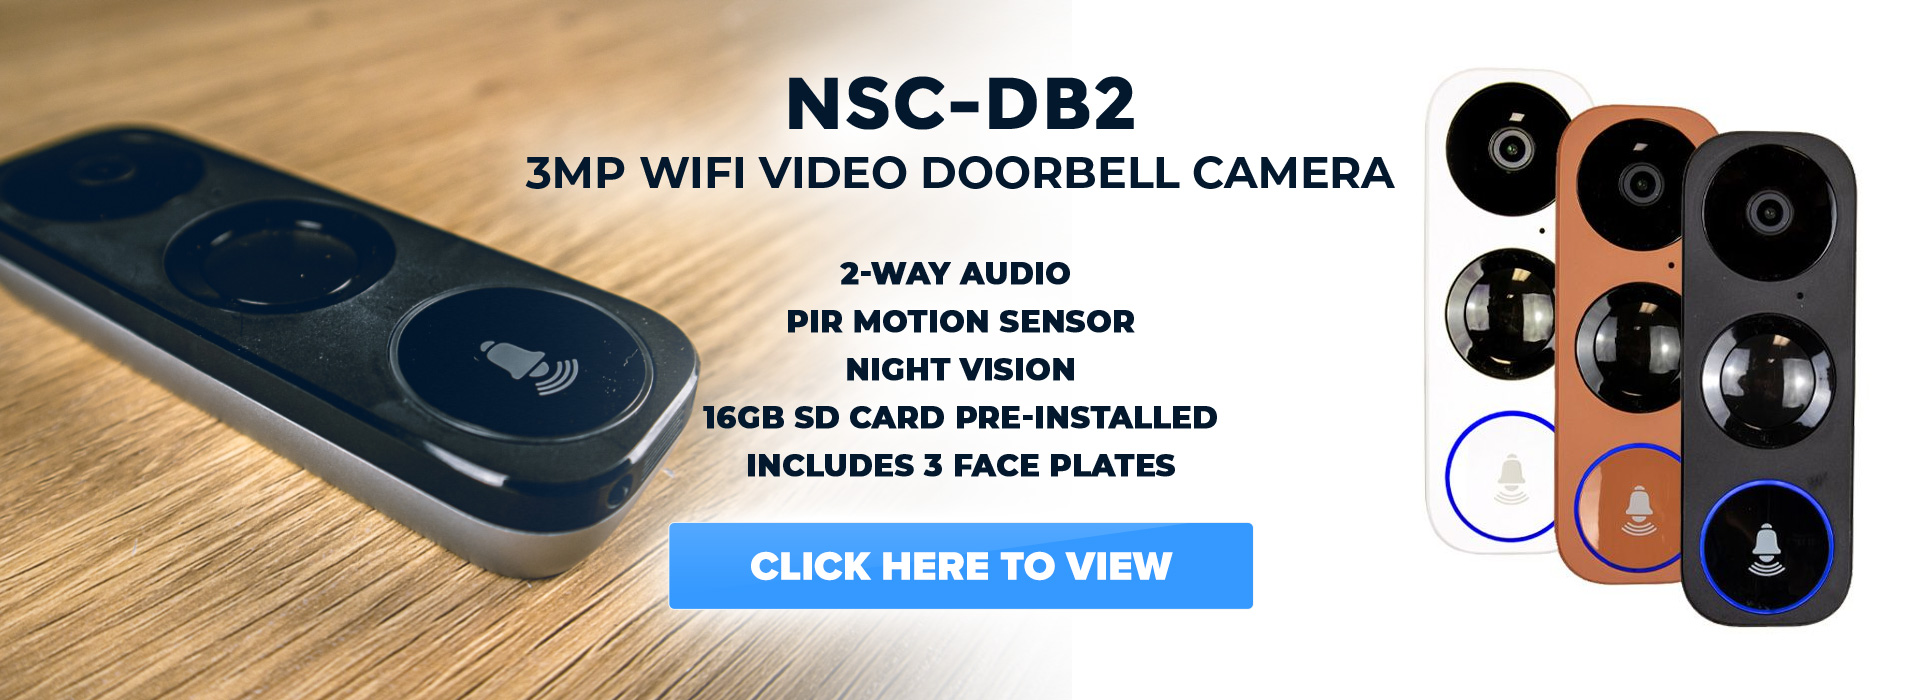 NSC-DB2 3MP Wifi Video Doorbell